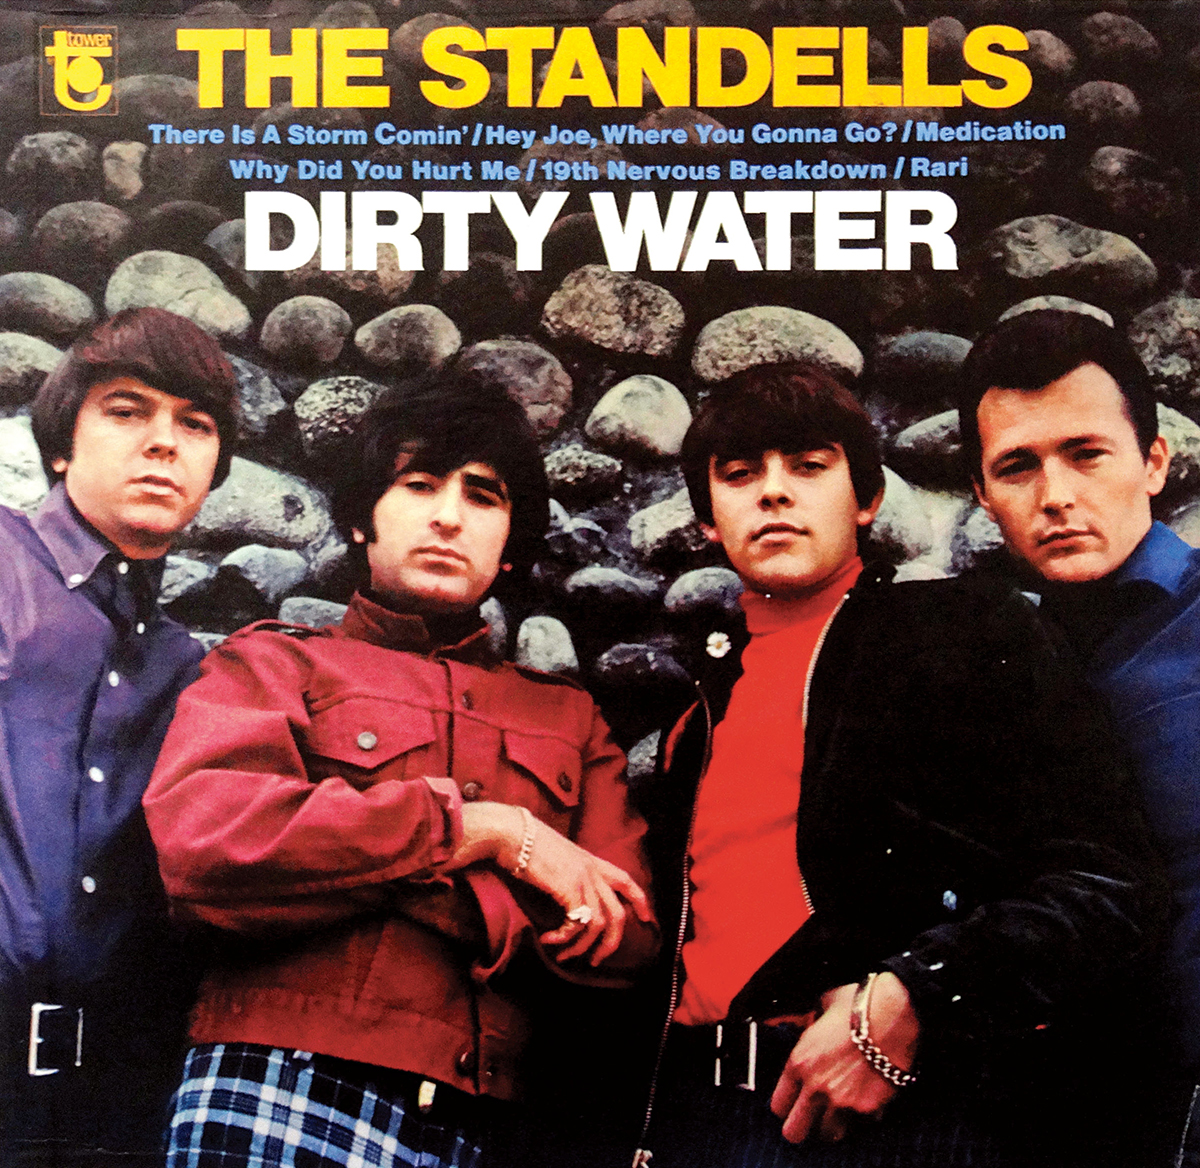 the standells dirty water album cover